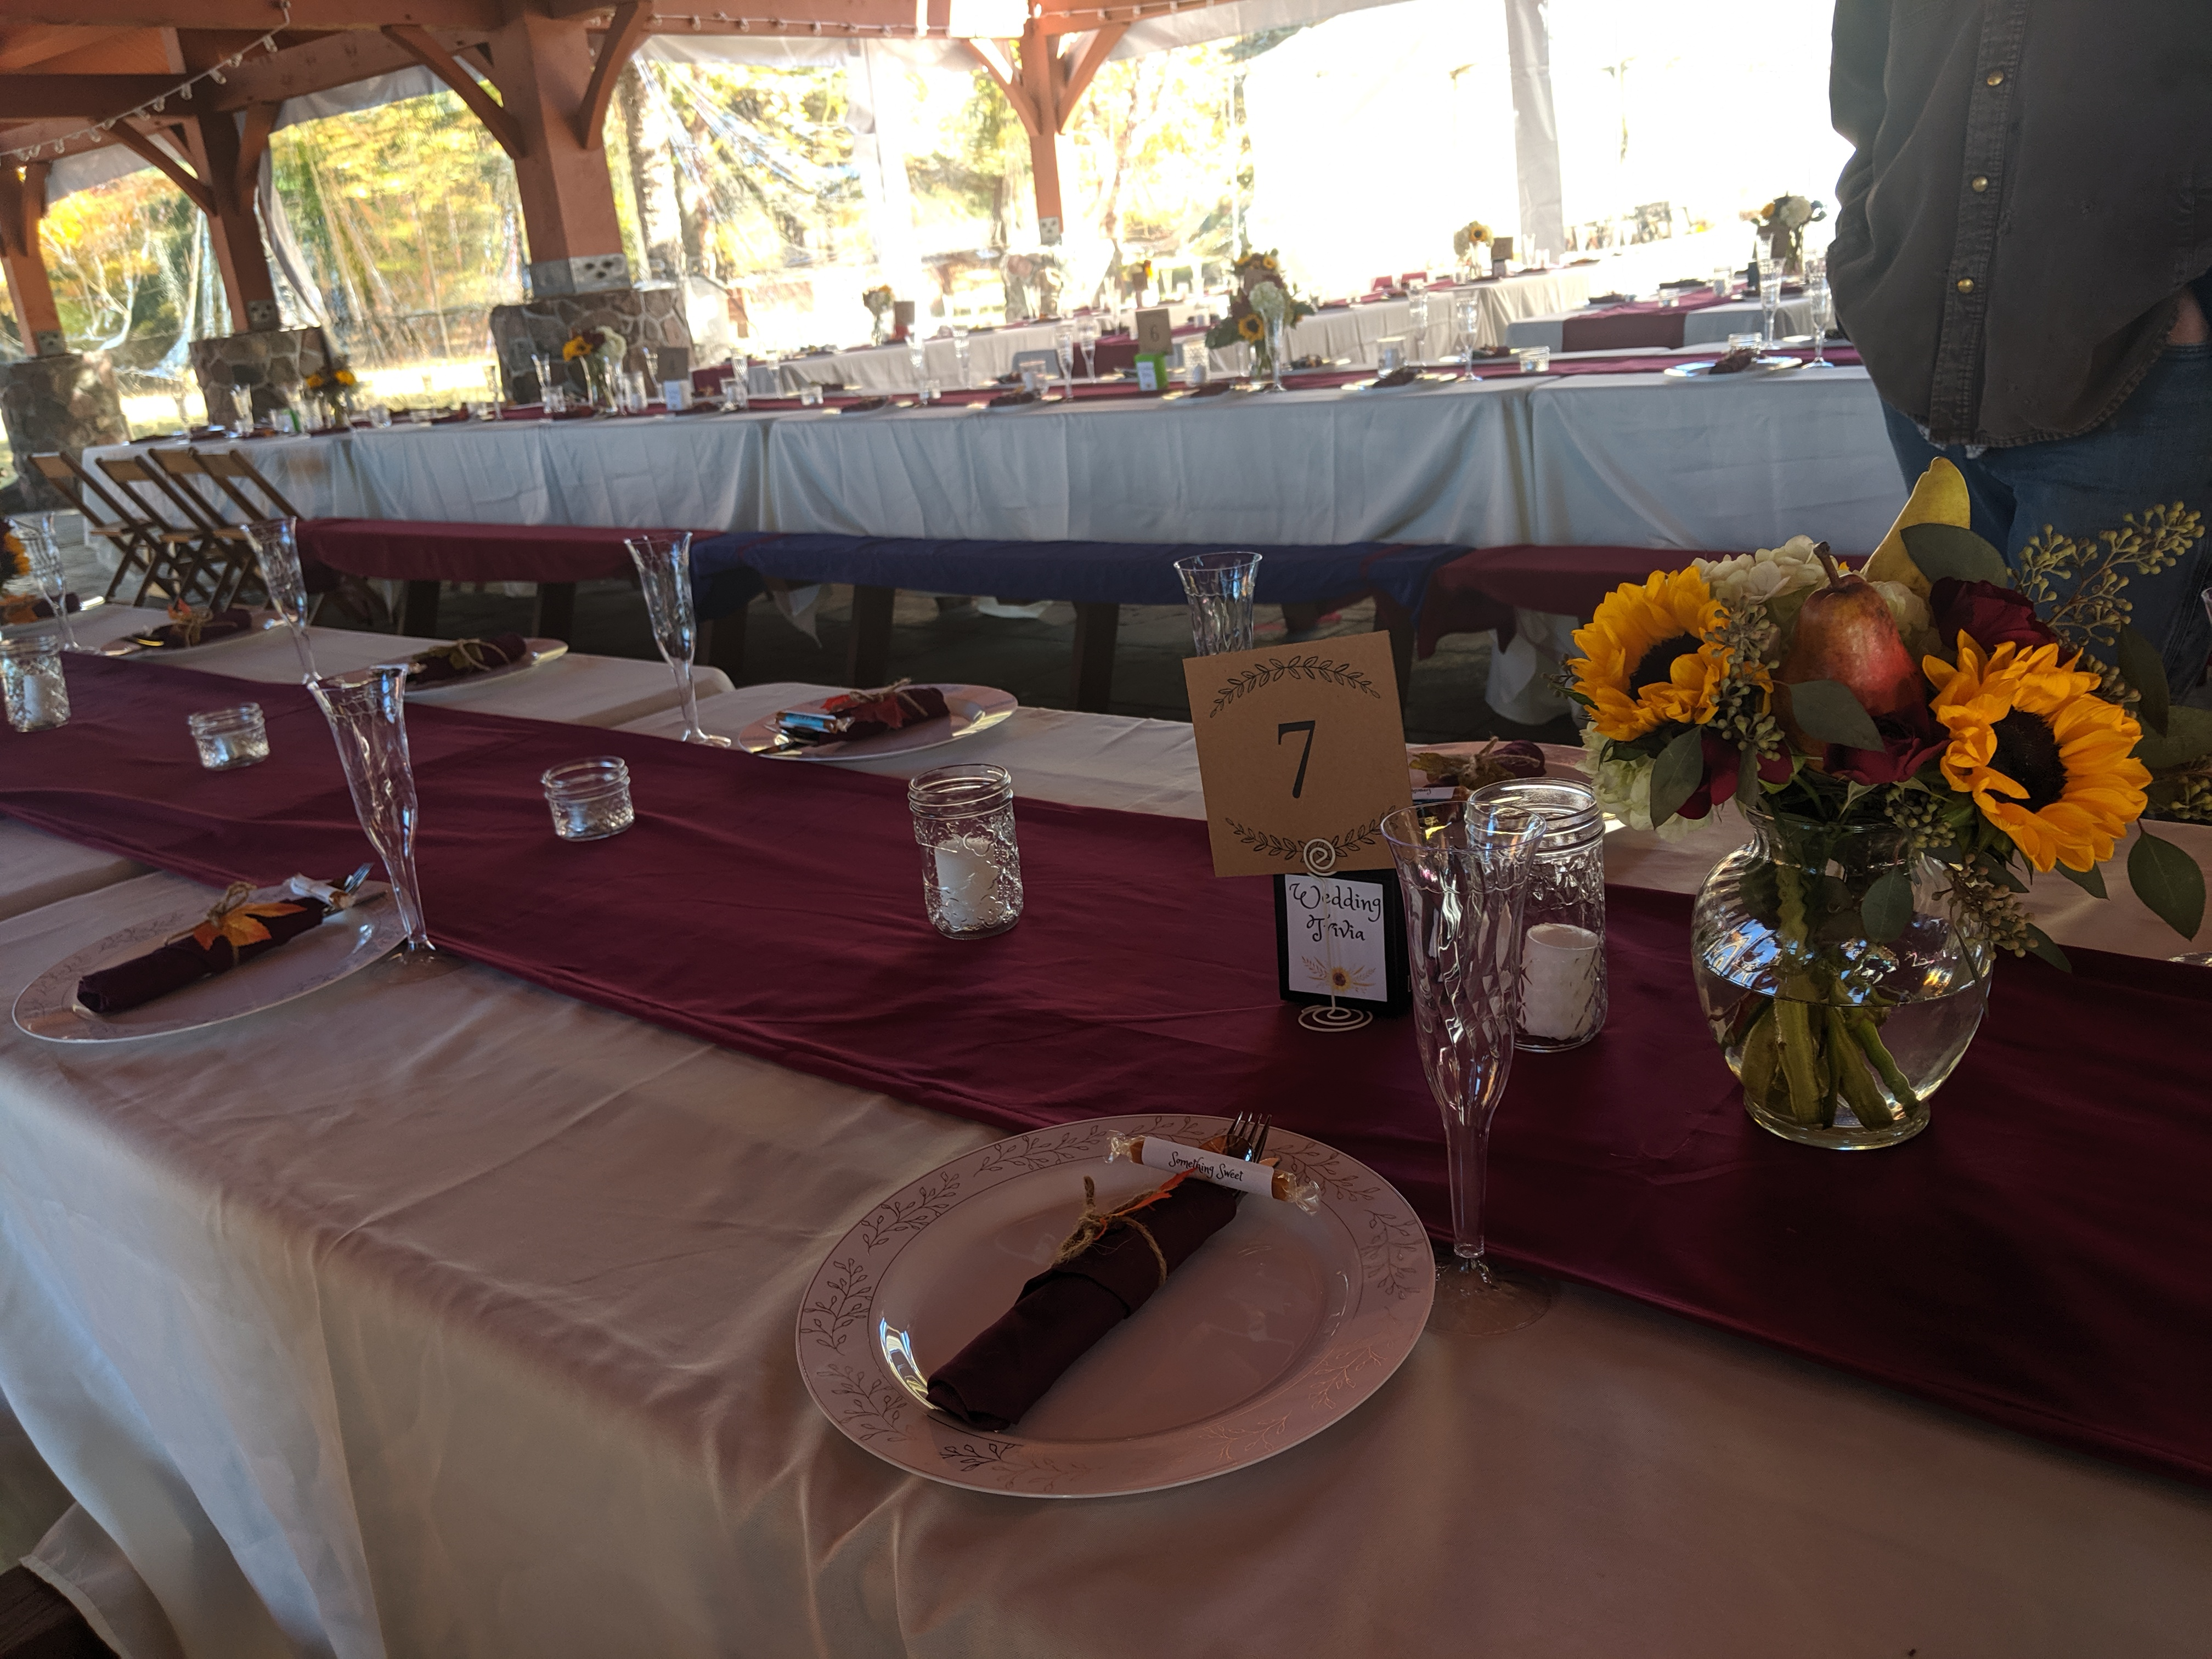 25 Foot Long Burgundy Table Runner